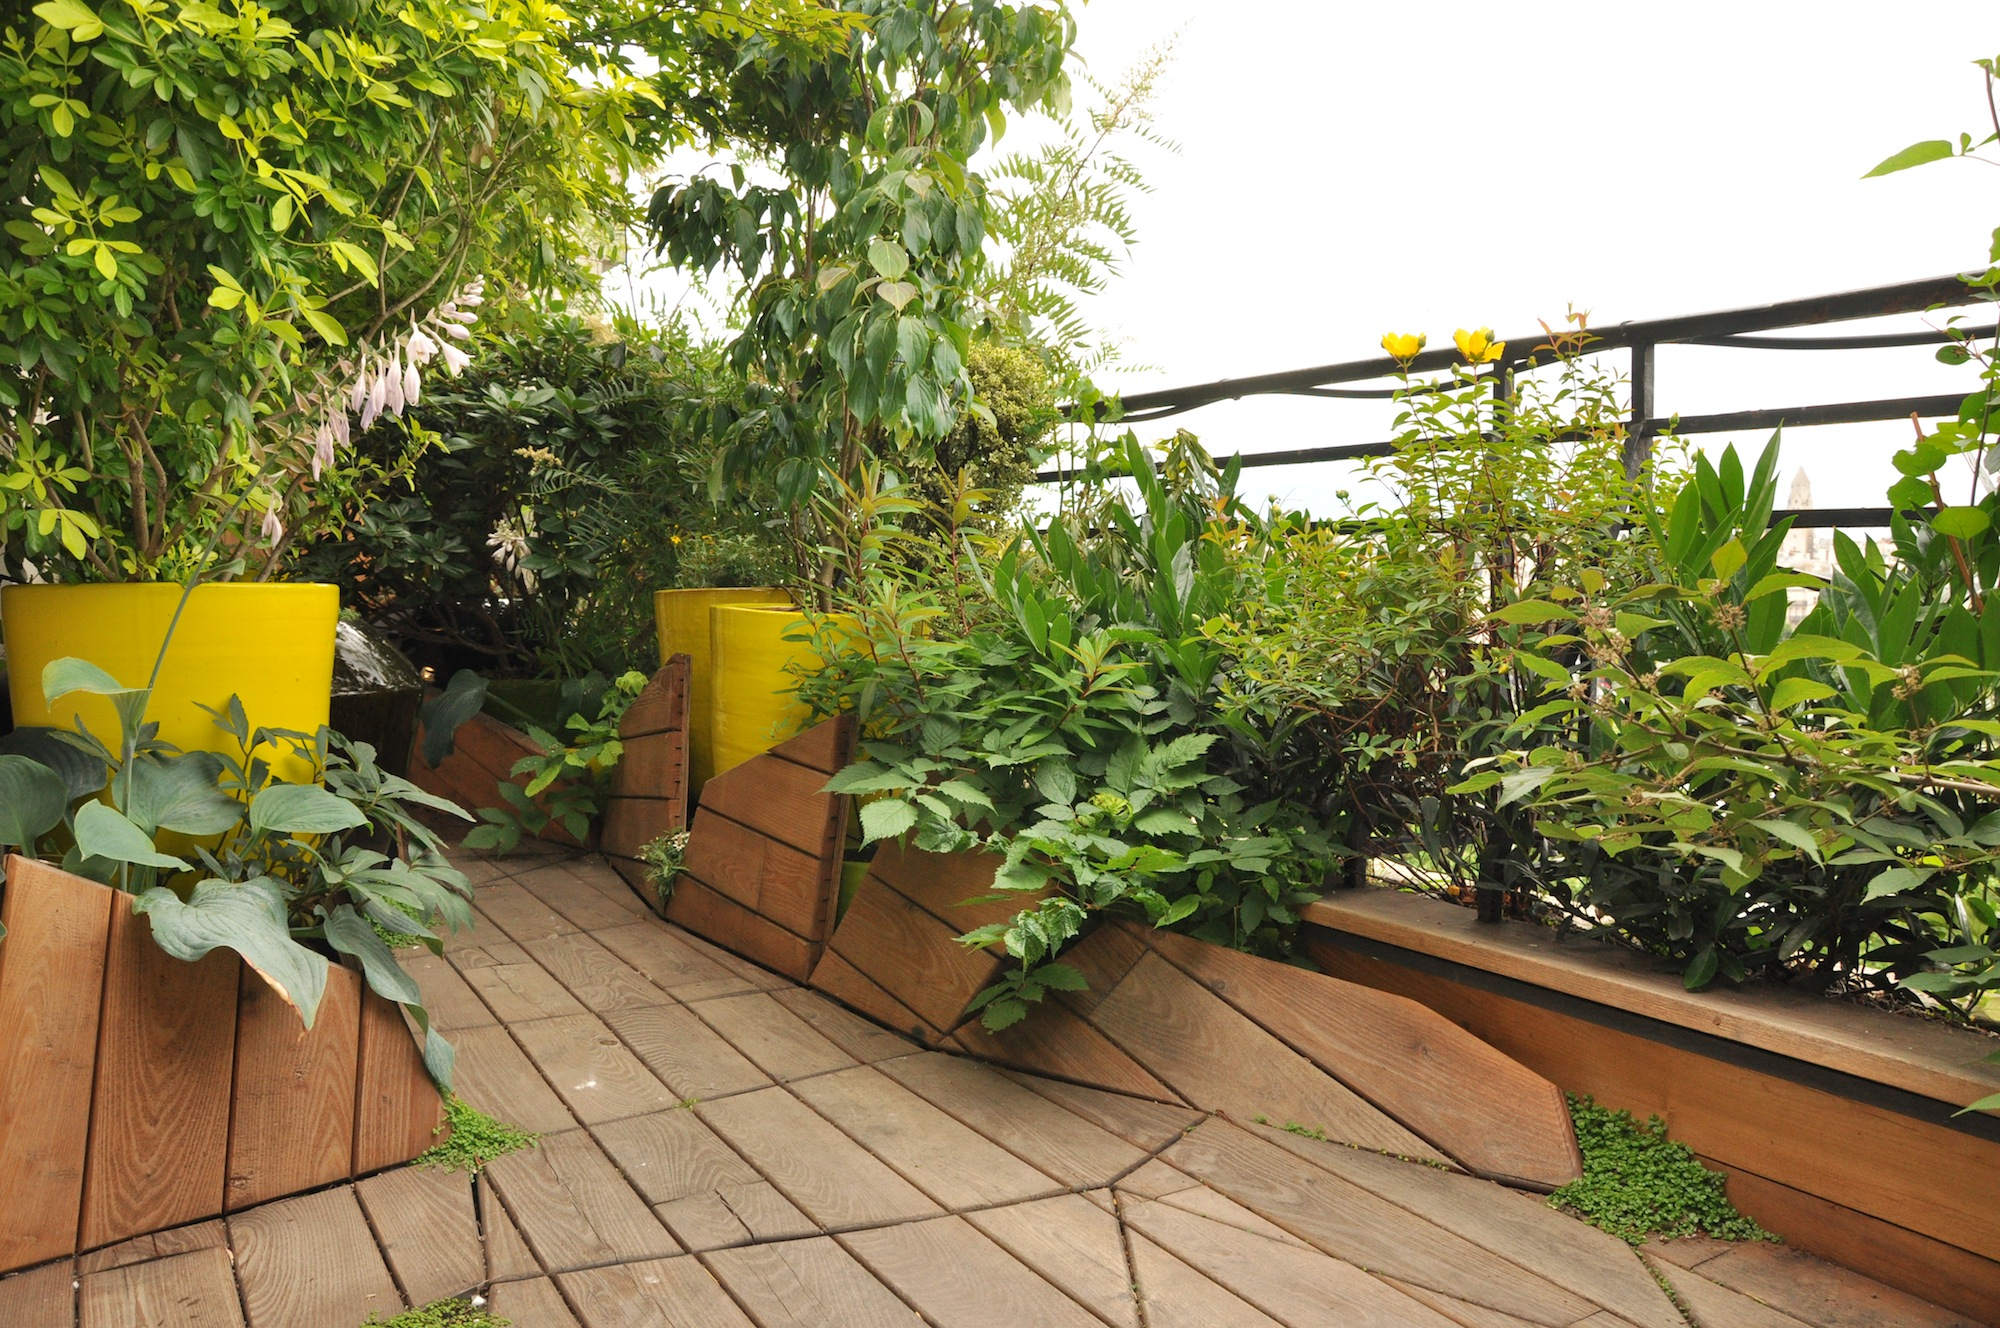 Atelier dlv paysagiste concepteur paris bertrand de la for Terrasse amenagement plantes